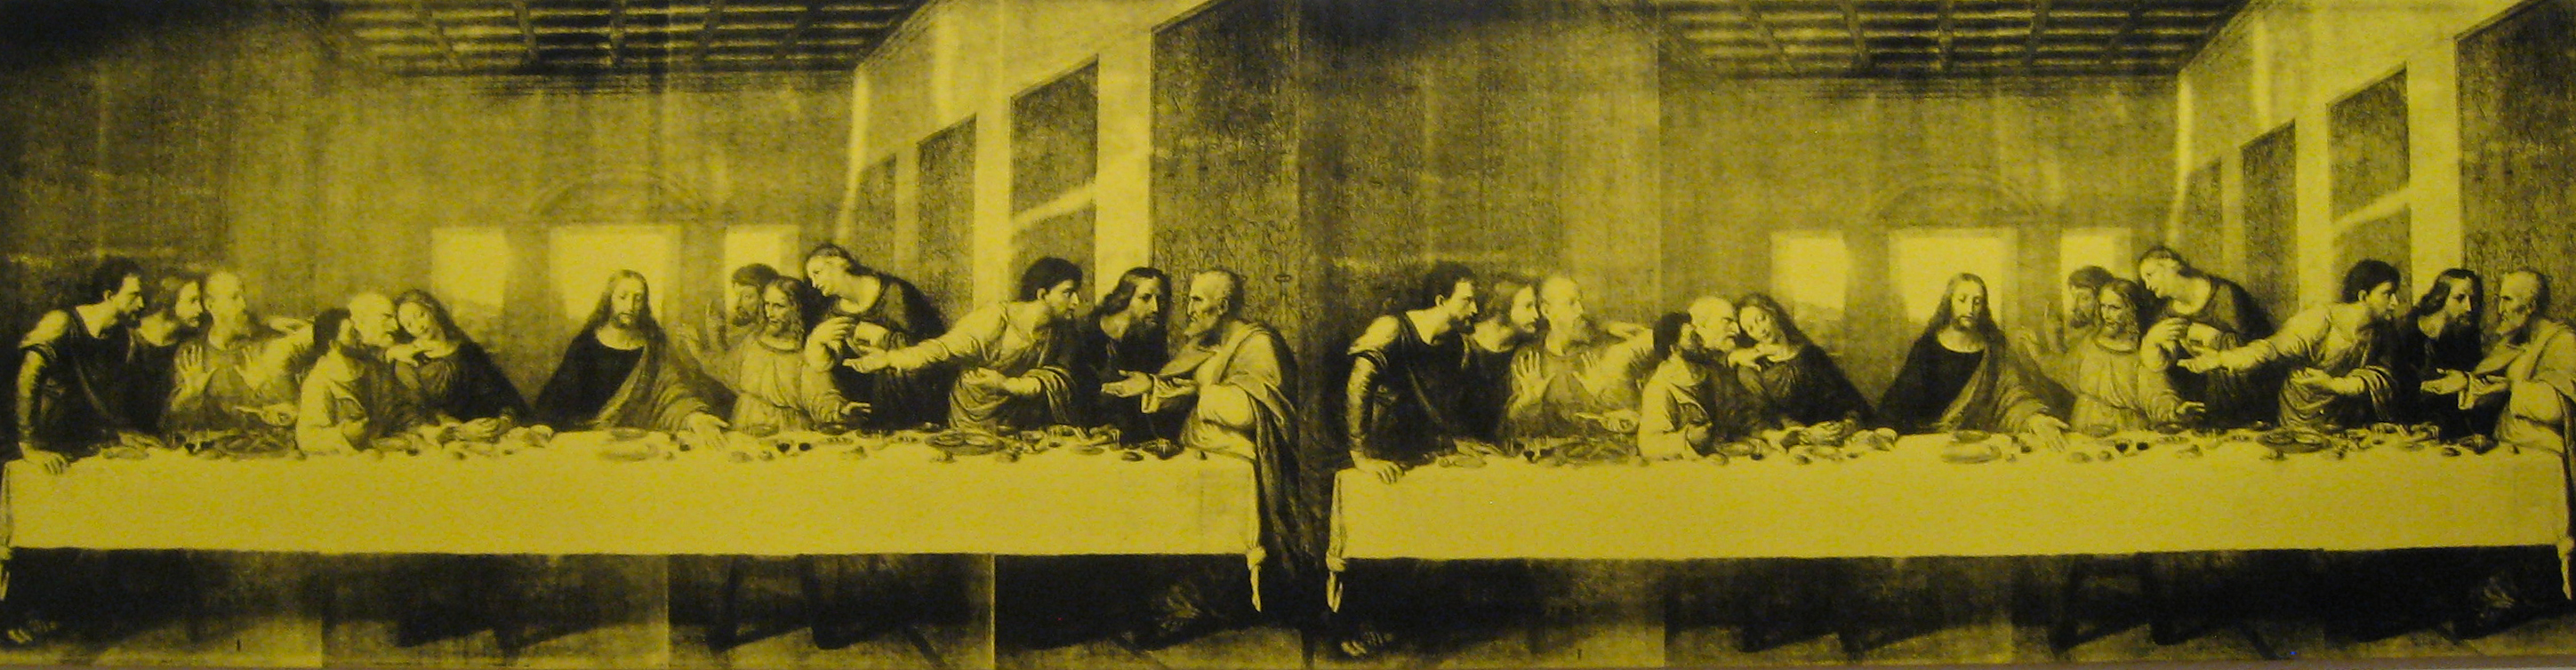 Andy Warhol, The Last Supper, 1986, acrylique et sérigraphie sur lin, The Baltimore Museum of Art, Baltimore © Sharon Mollerus